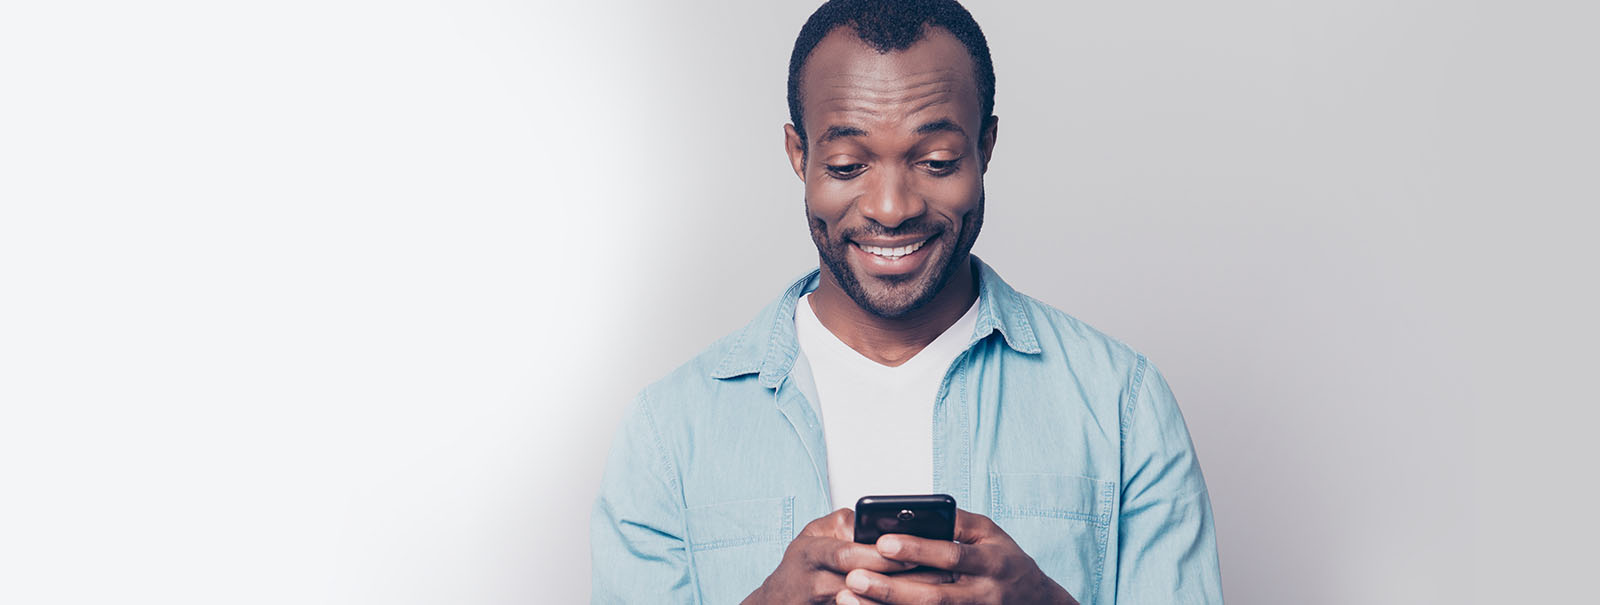 Smiling man looking at mobile phone.